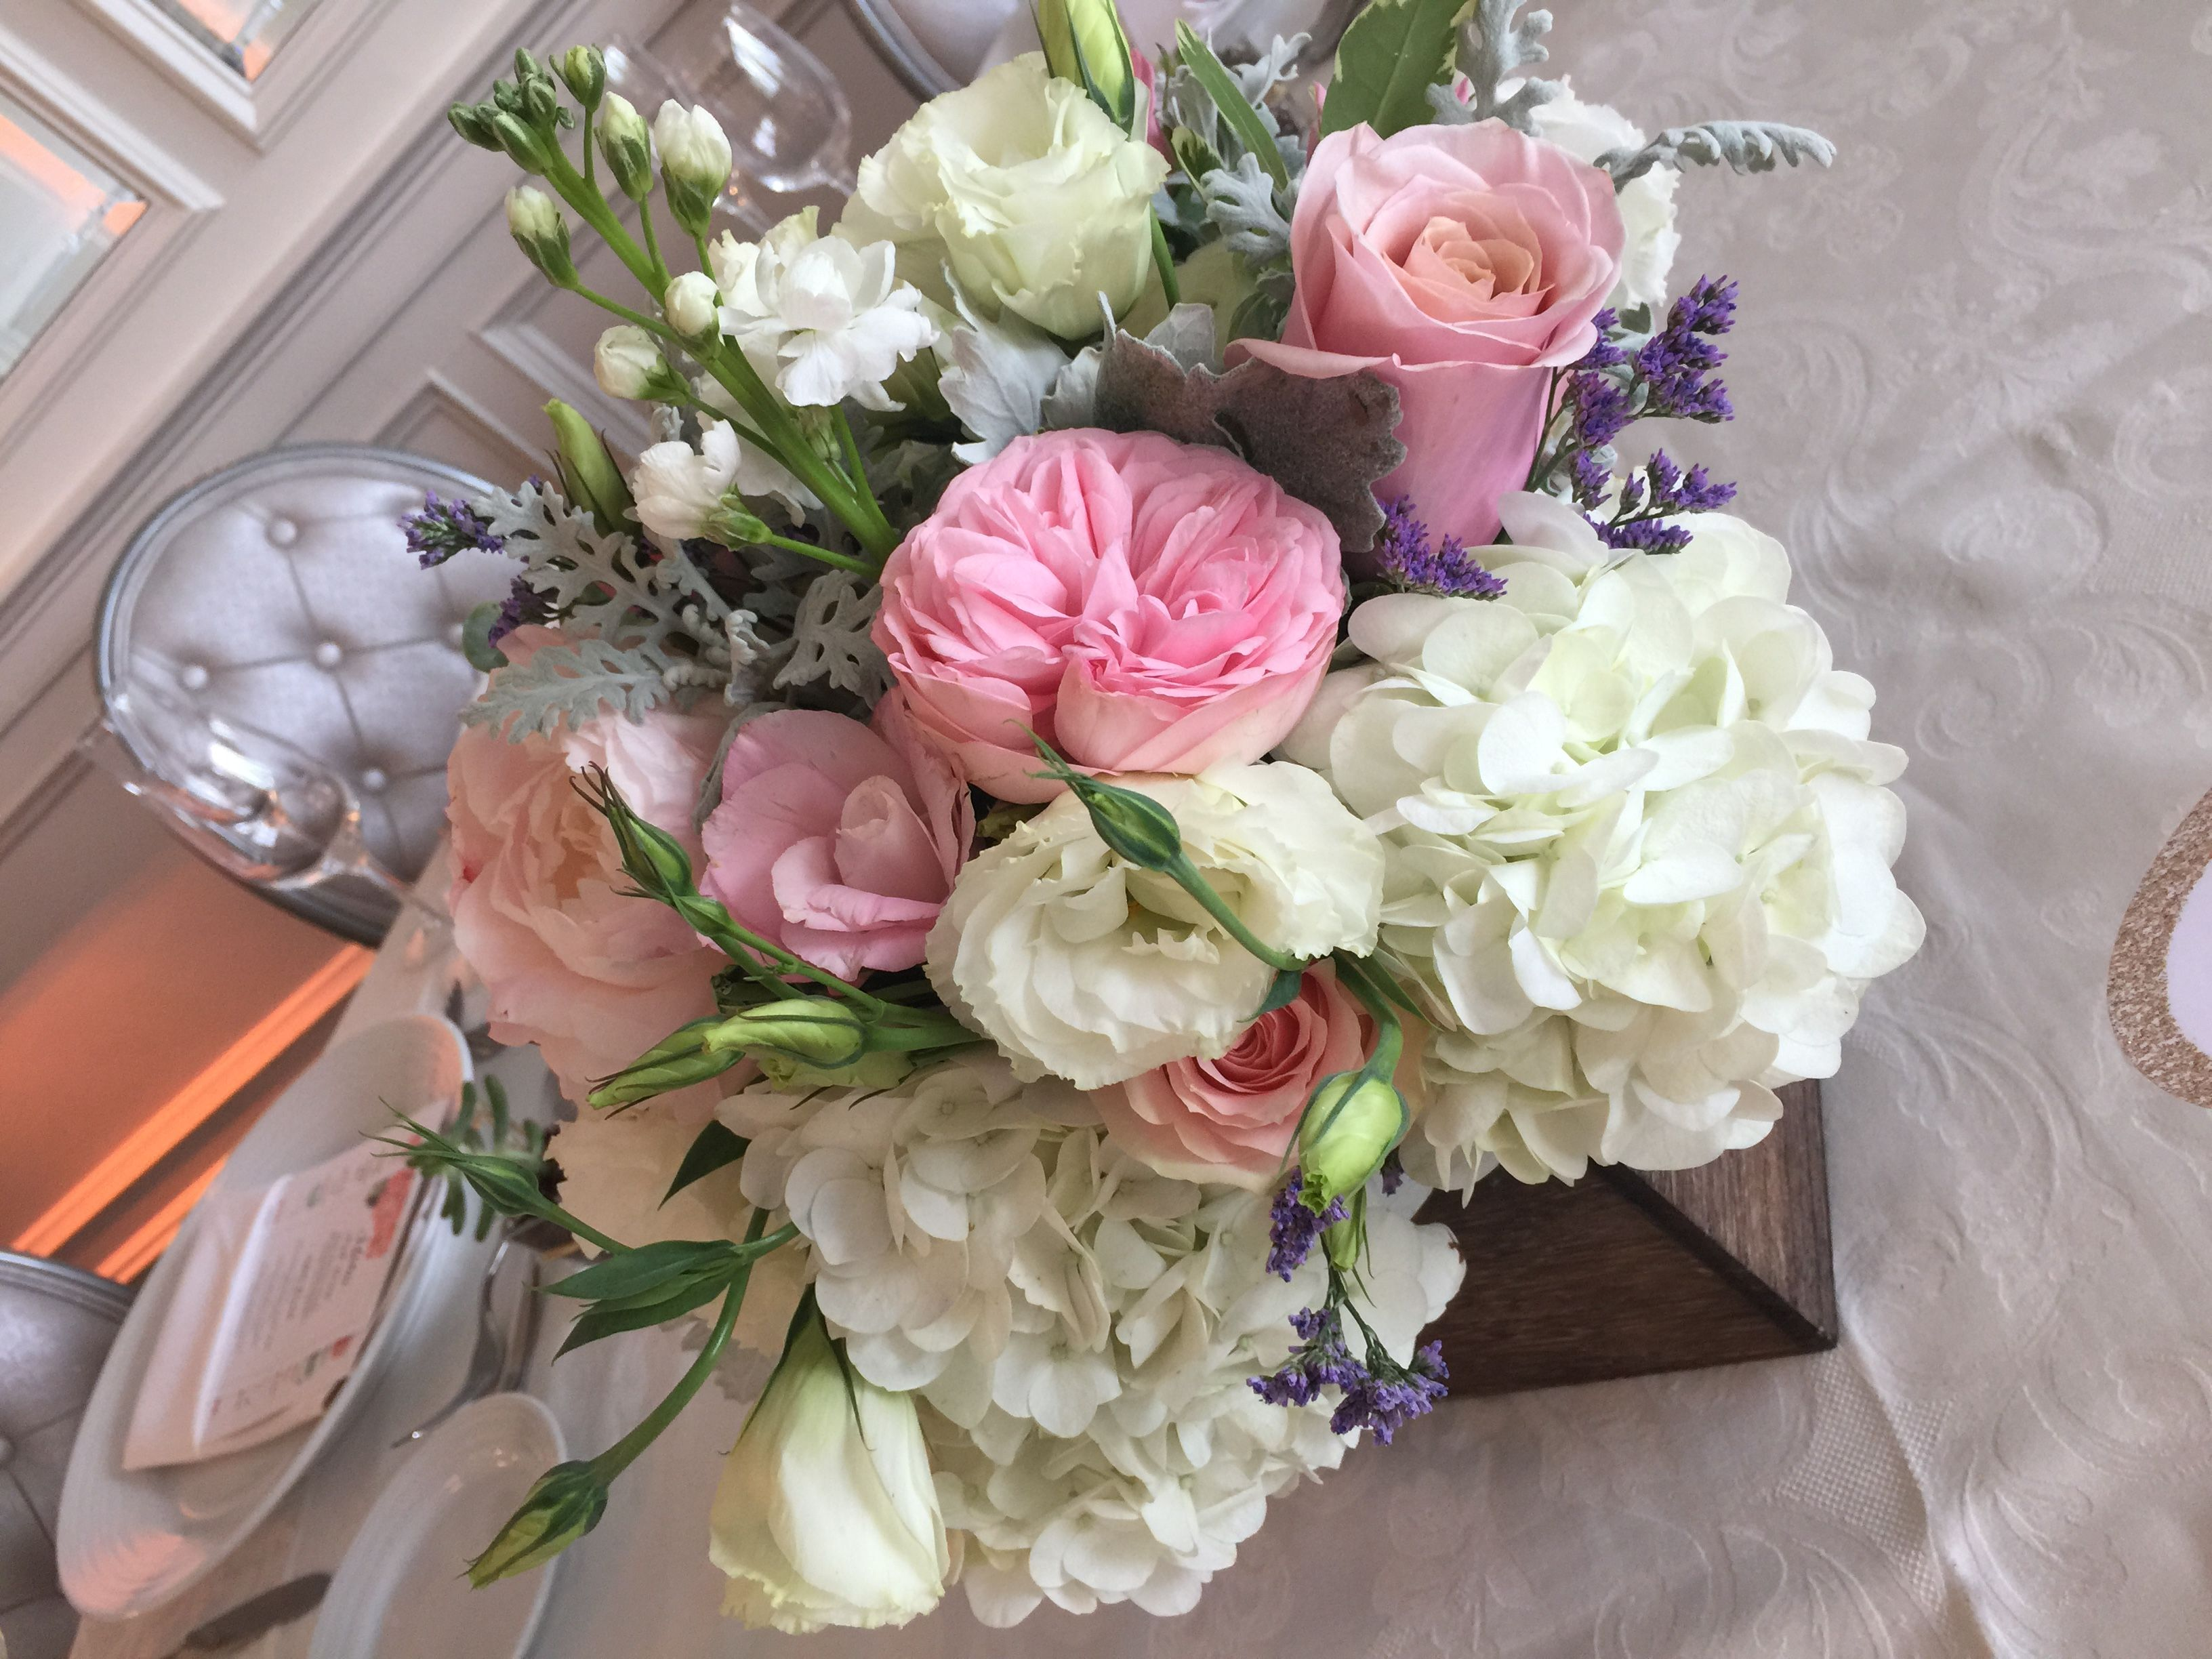 rustic wooden box centerpiece with hydrangea pink garden roses blush pink roses succulents